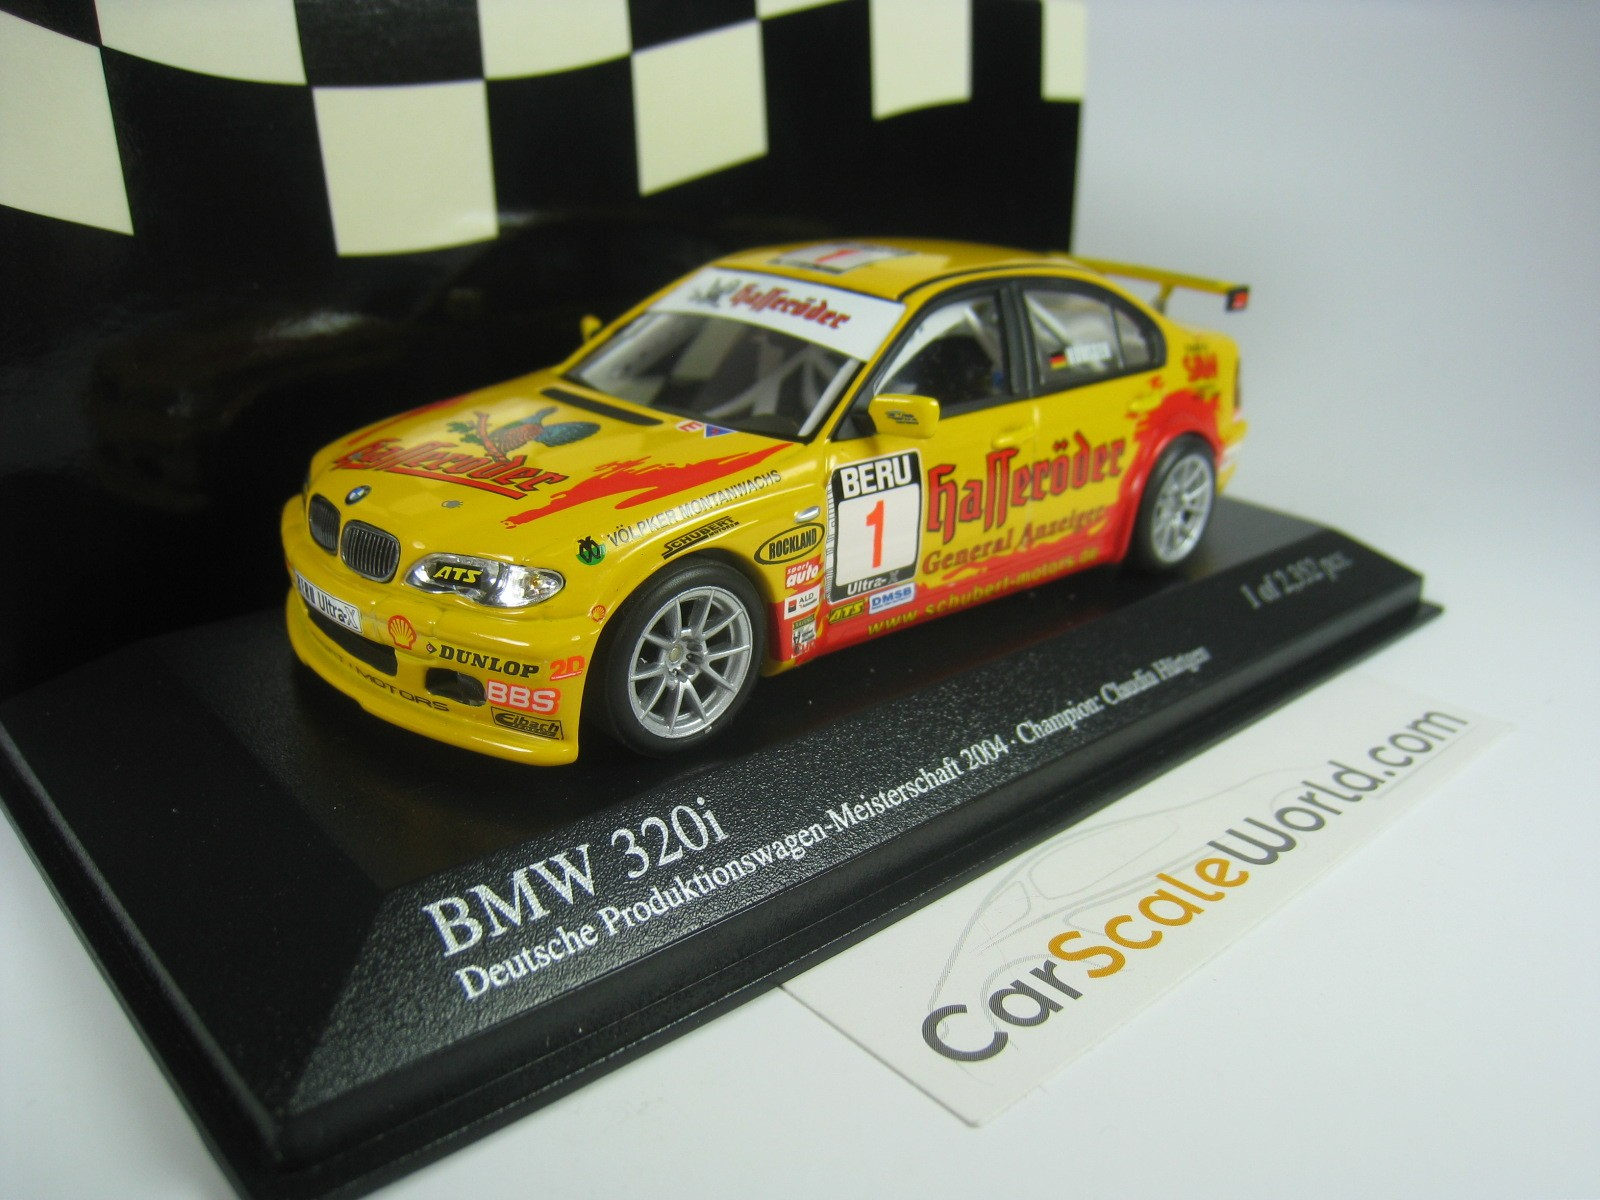 bmw 320i e46 schubert motors dmsb pwm2004 h rtgen 1 43 minichamps carscaleworld. Black Bedroom Furniture Sets. Home Design Ideas